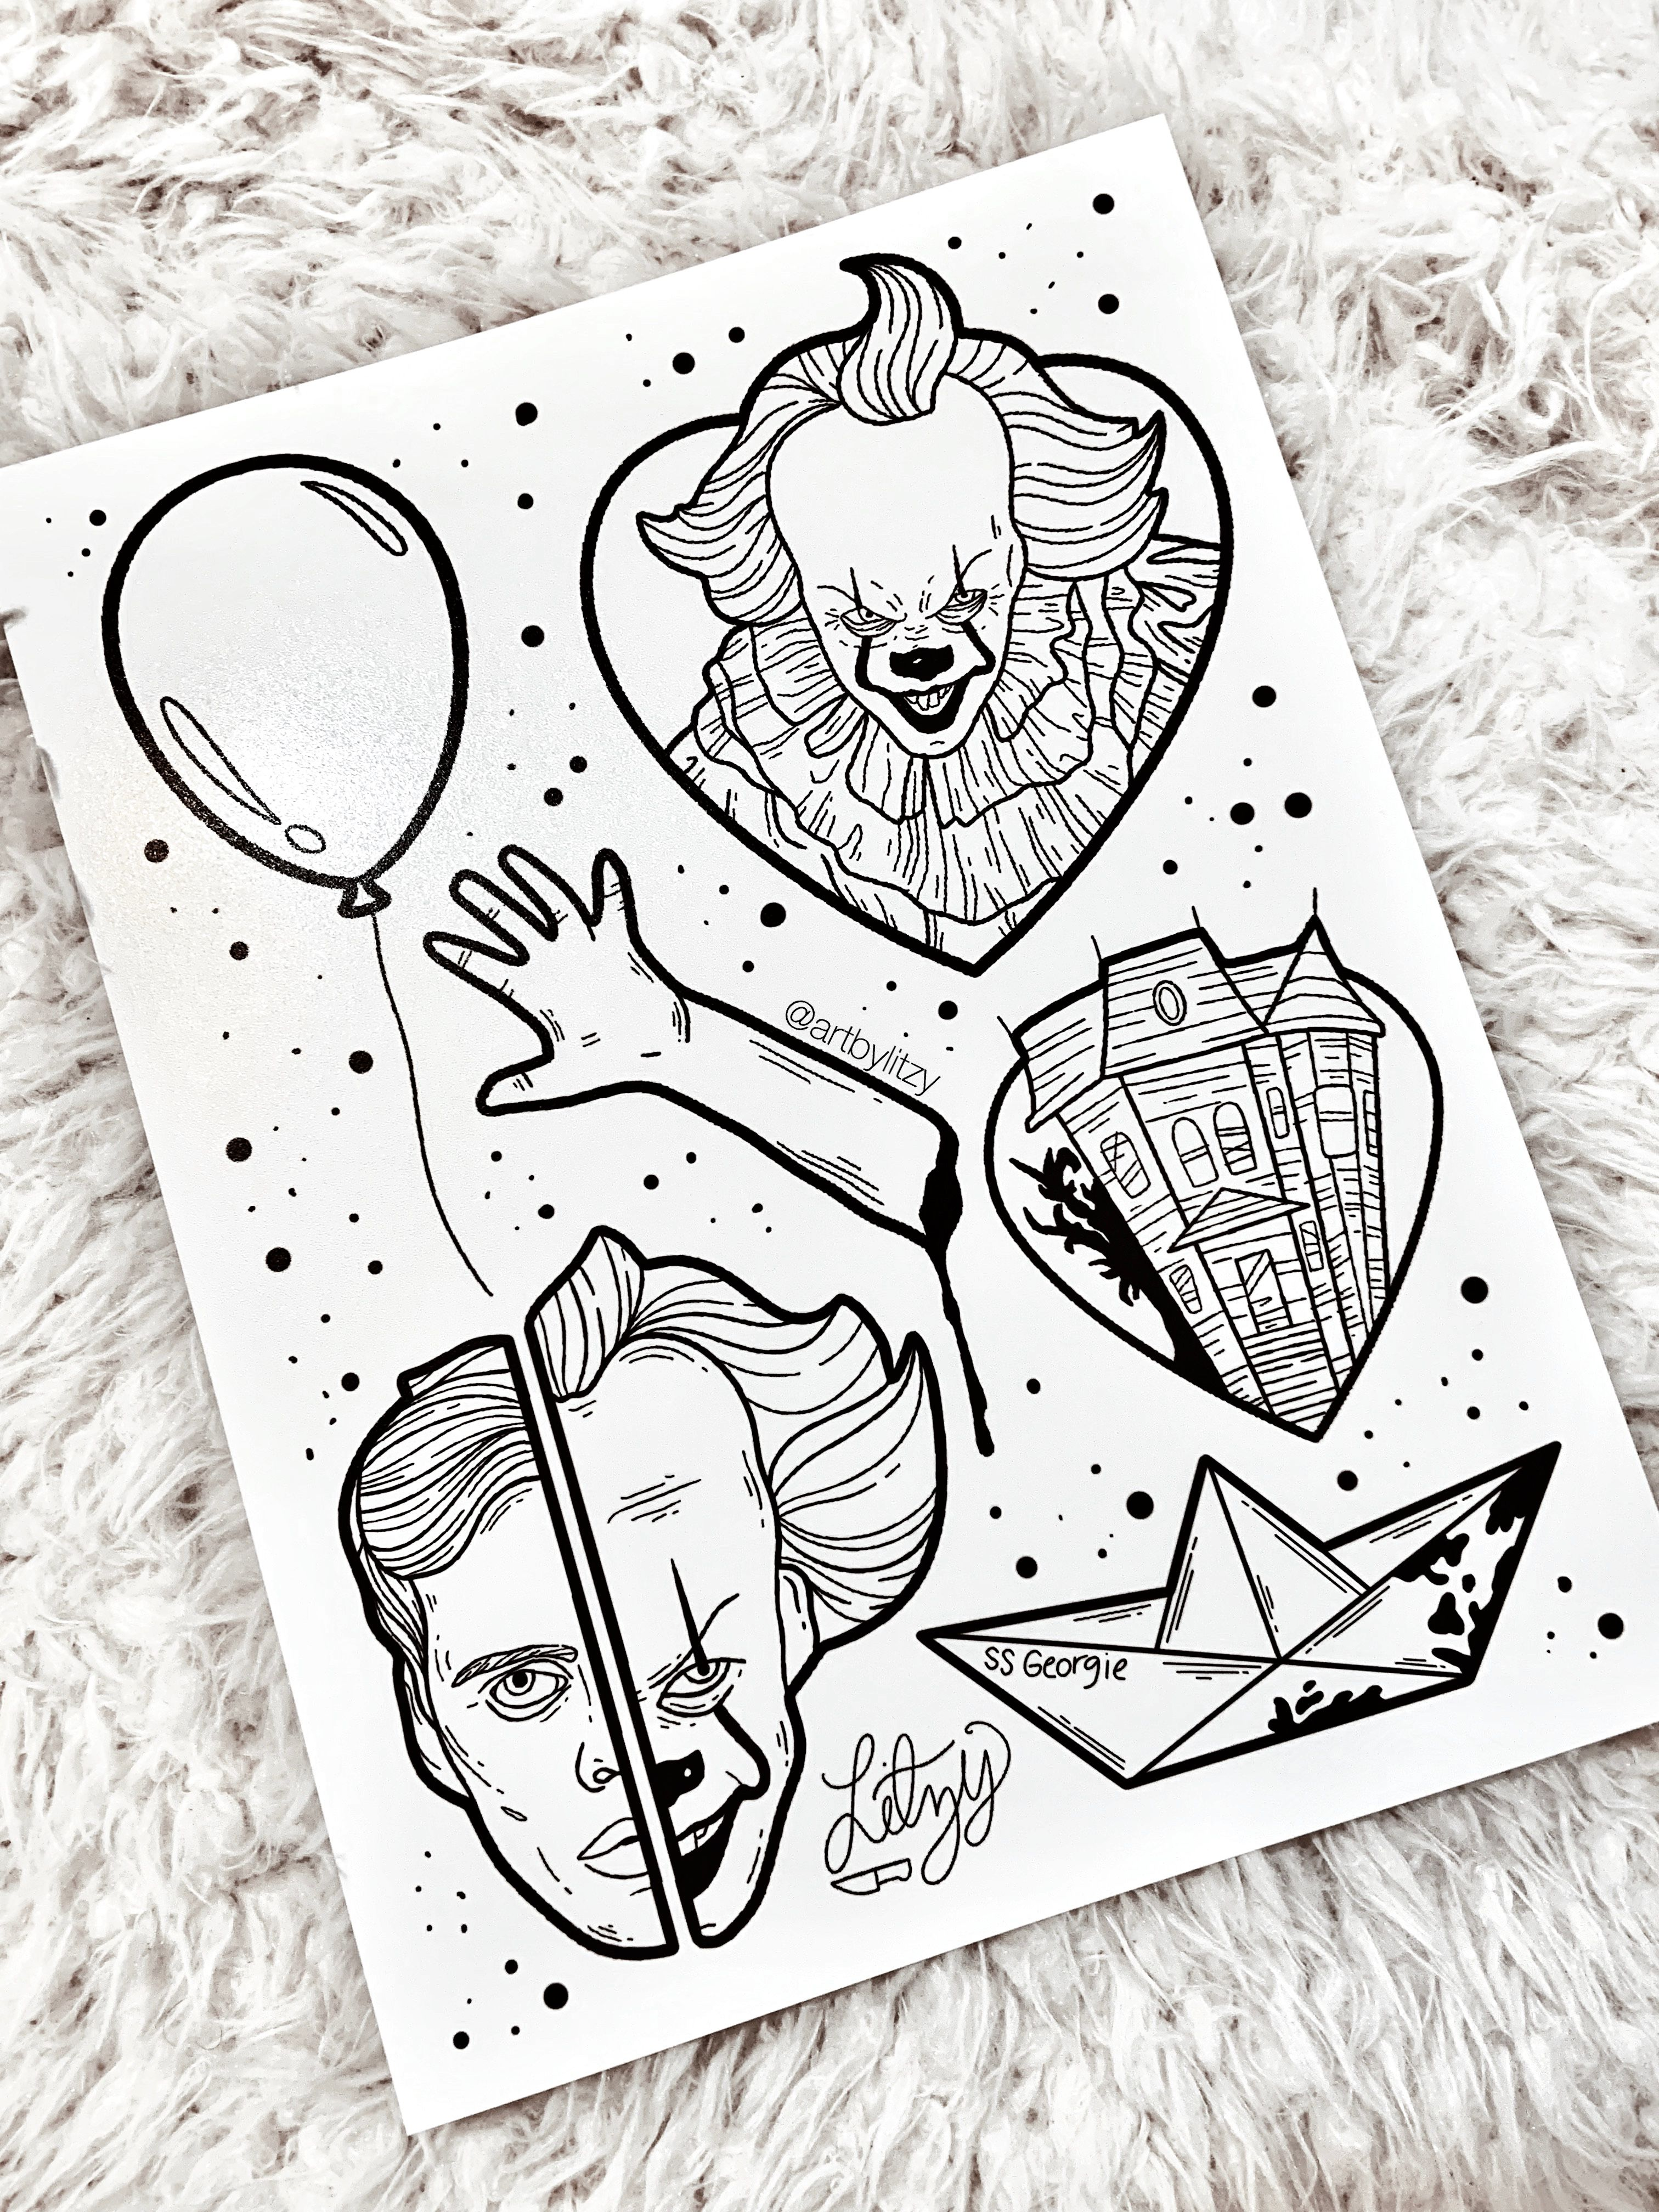 Pennywise It Designs Artbylitzy Halloween Tattoo Flash Halloween Tattoos Movie Tattoos